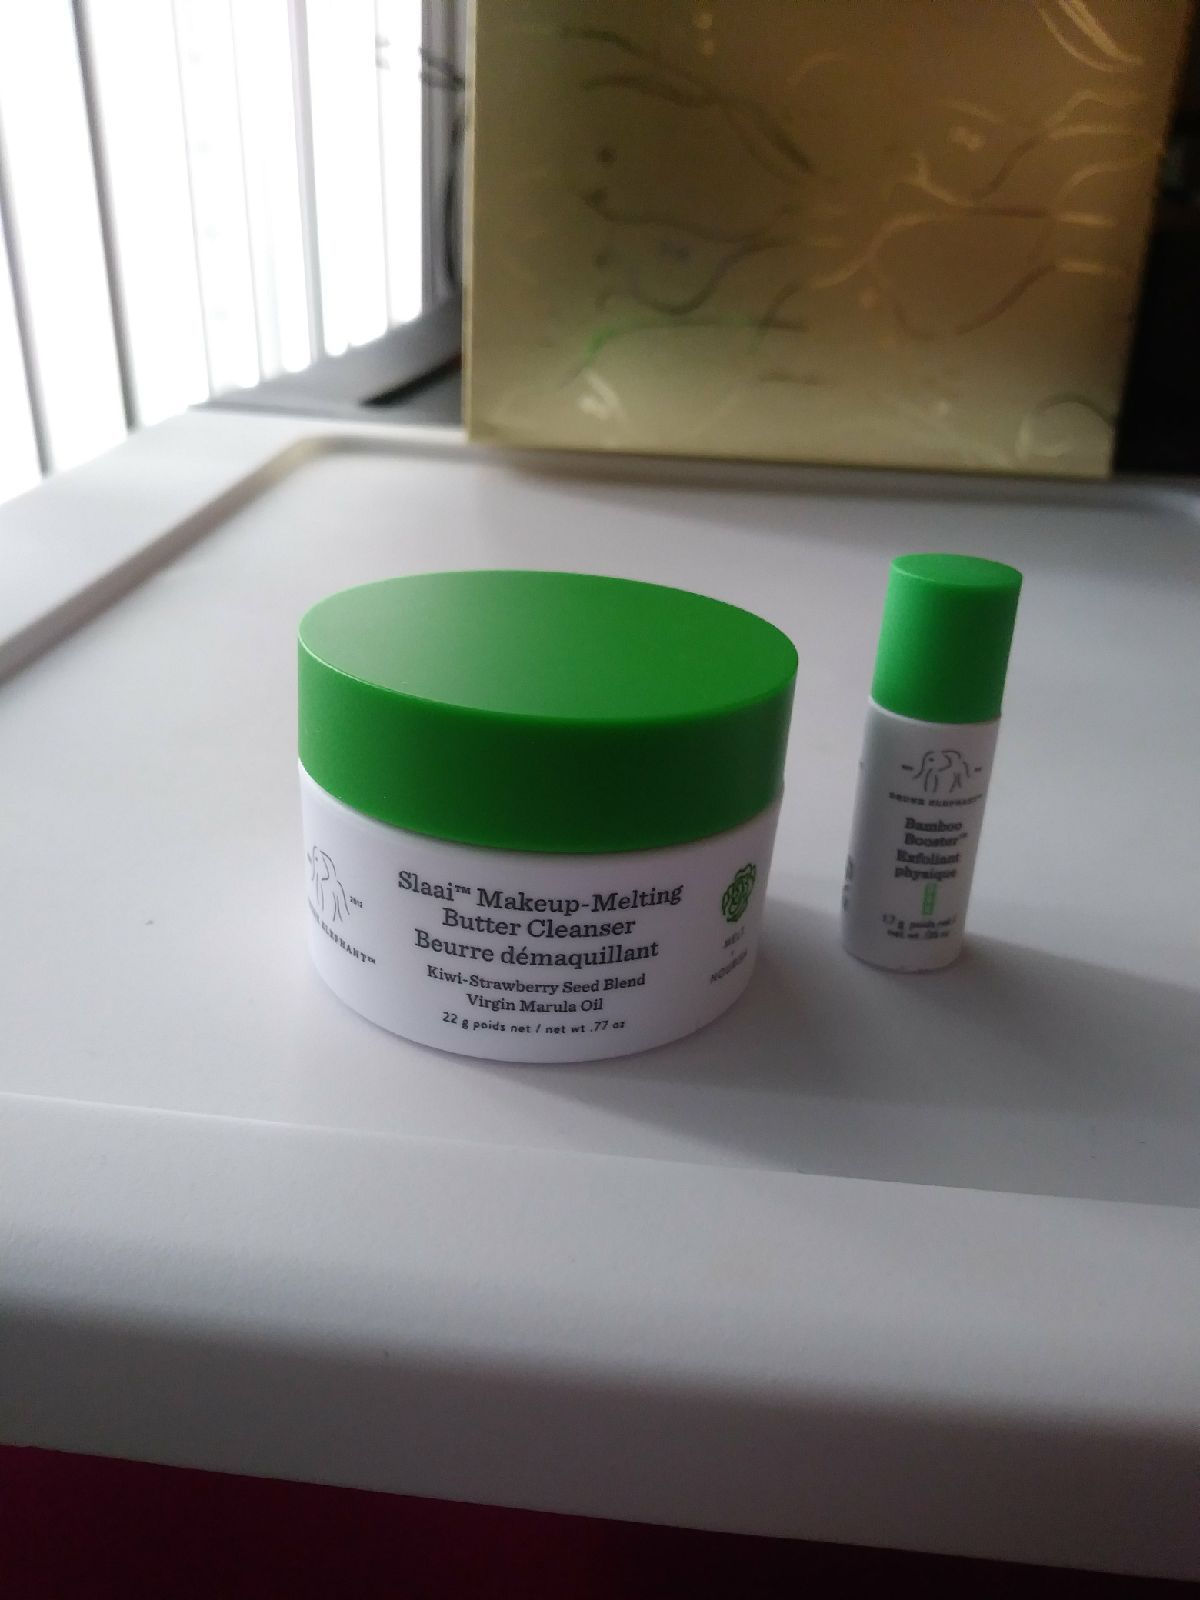 This is the Midi size Slaai Makeupmelting butter cleanser